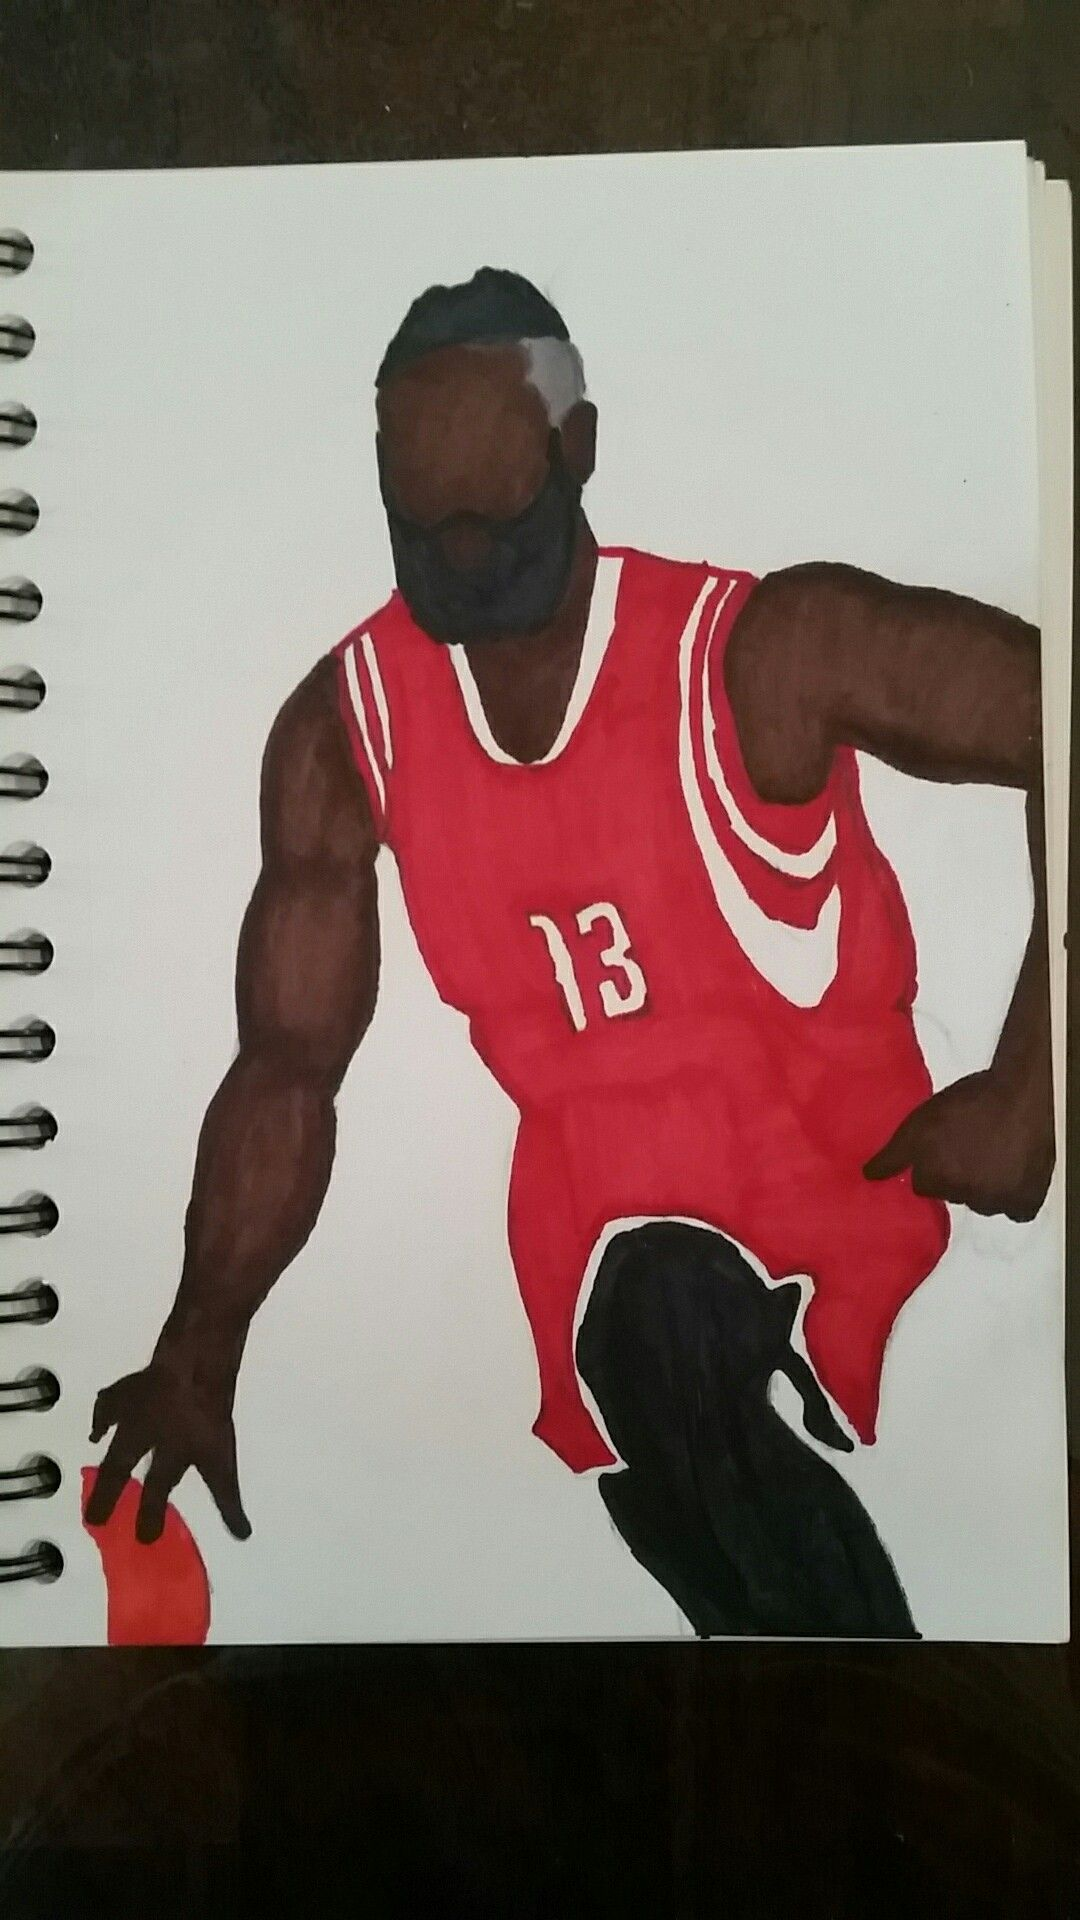 How To Draw James Harden Basketball Houston Rockets Nba Player